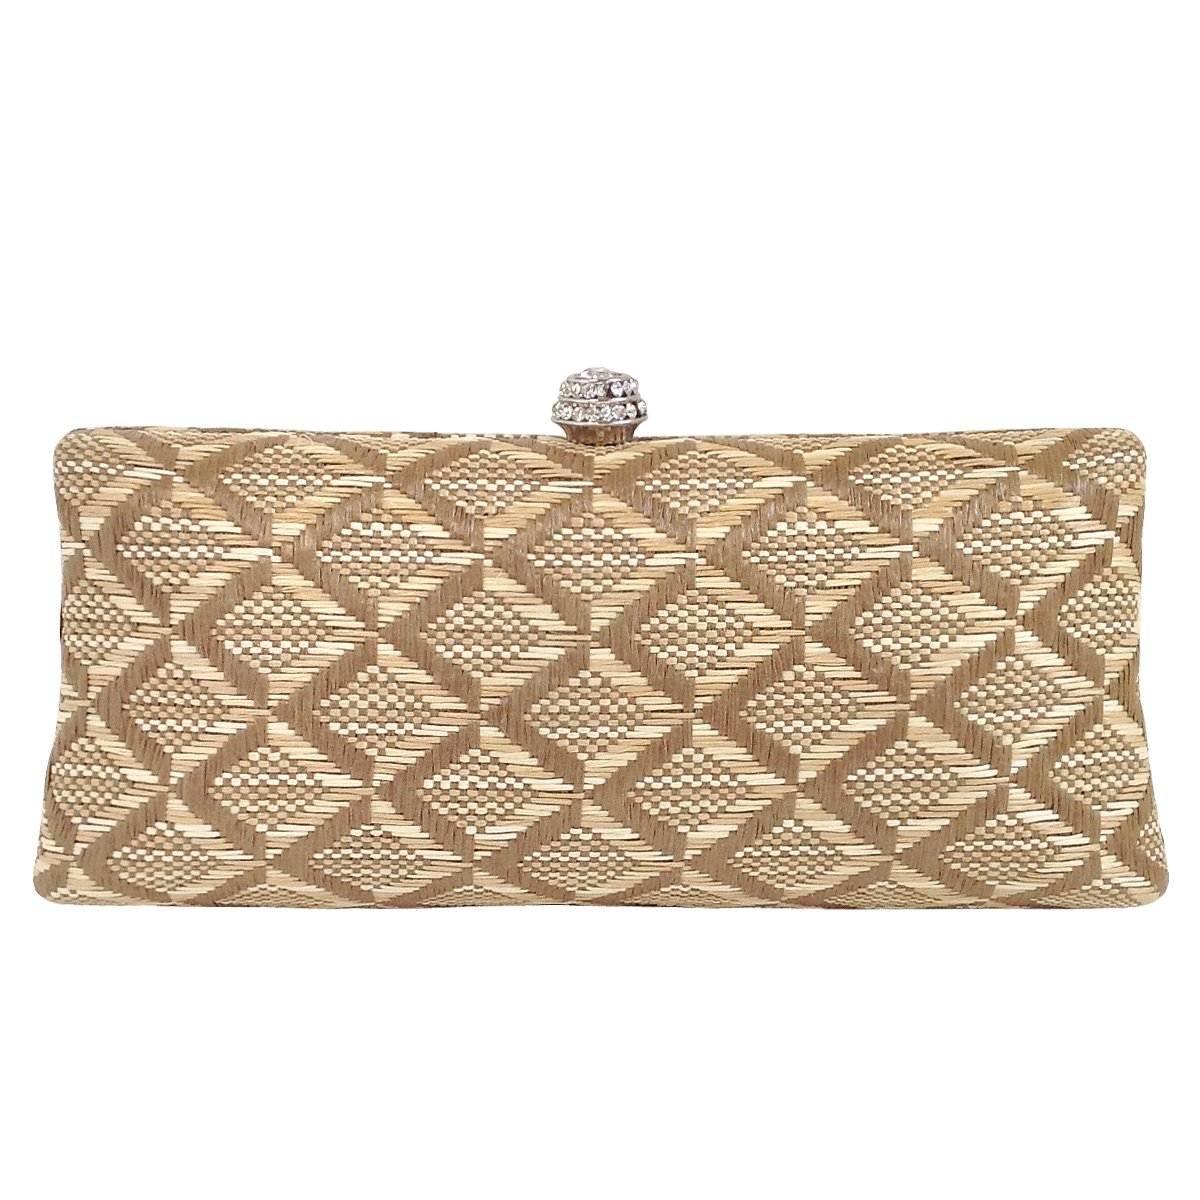 Geometric Patterned Raffia Straw Box Clutch, Natural